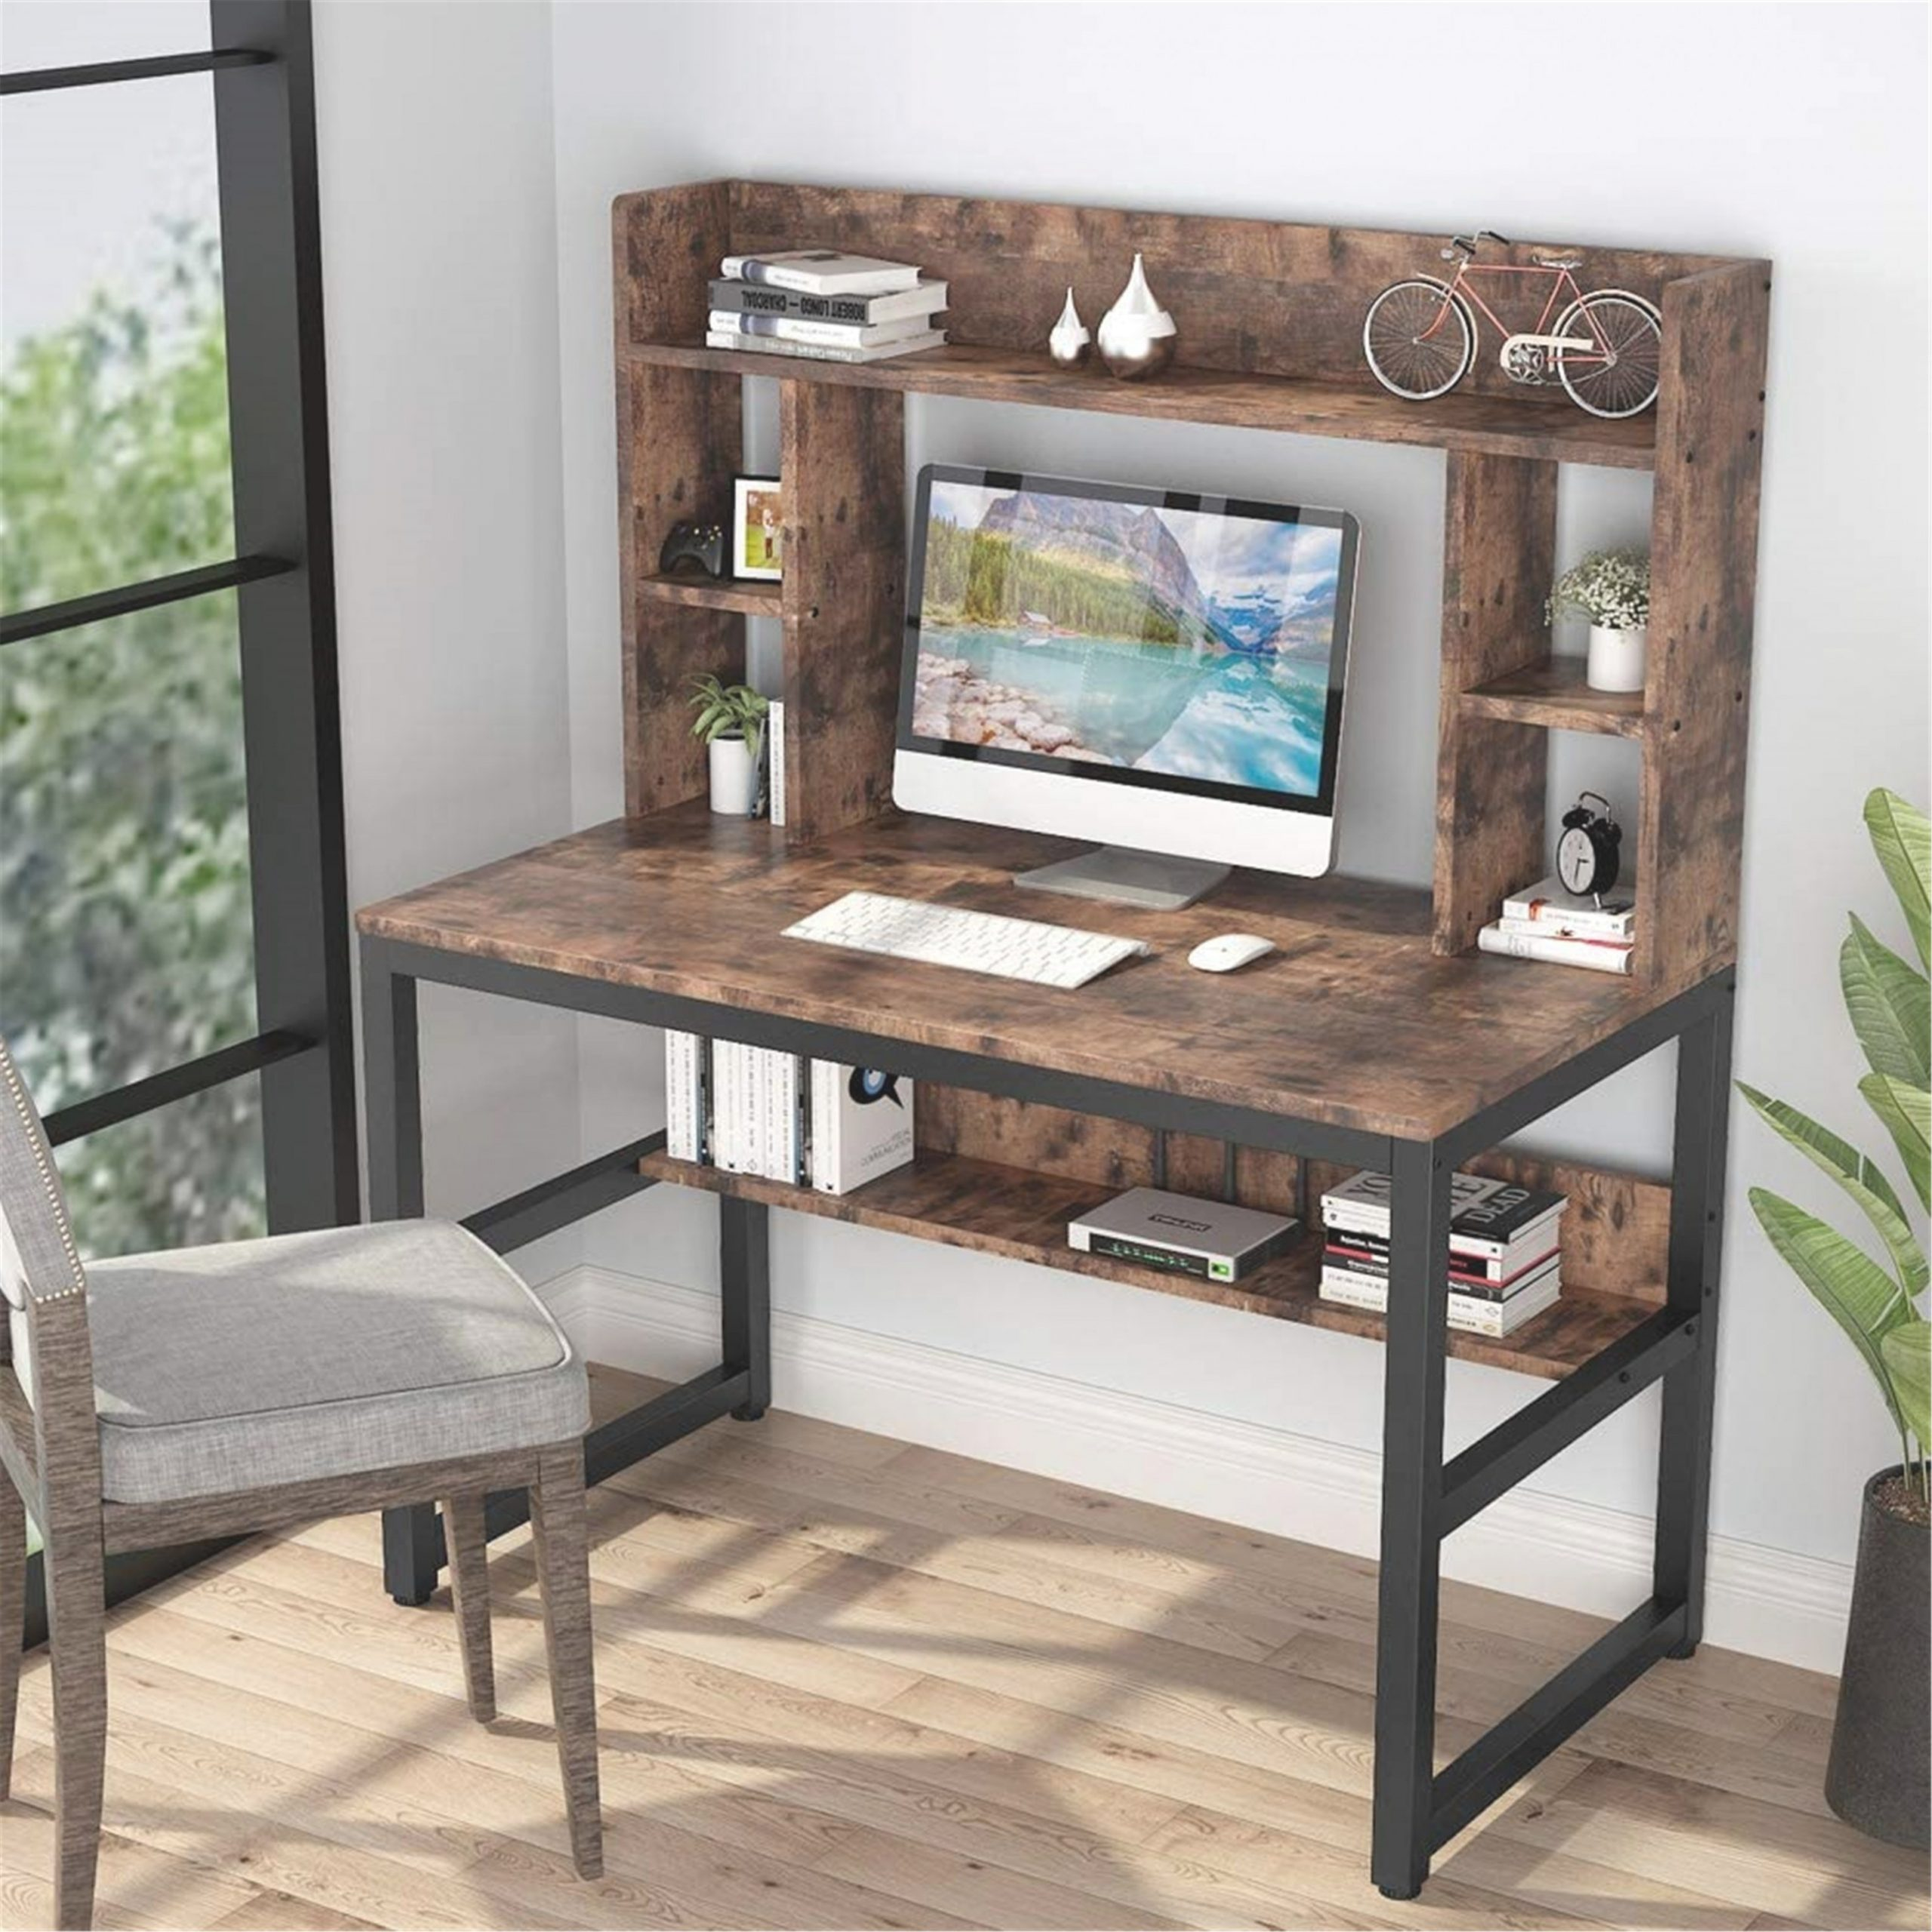 47 Inches Computer Desk With Hutch,writing Desk With Shelves intended for Writing Desk With Hutch